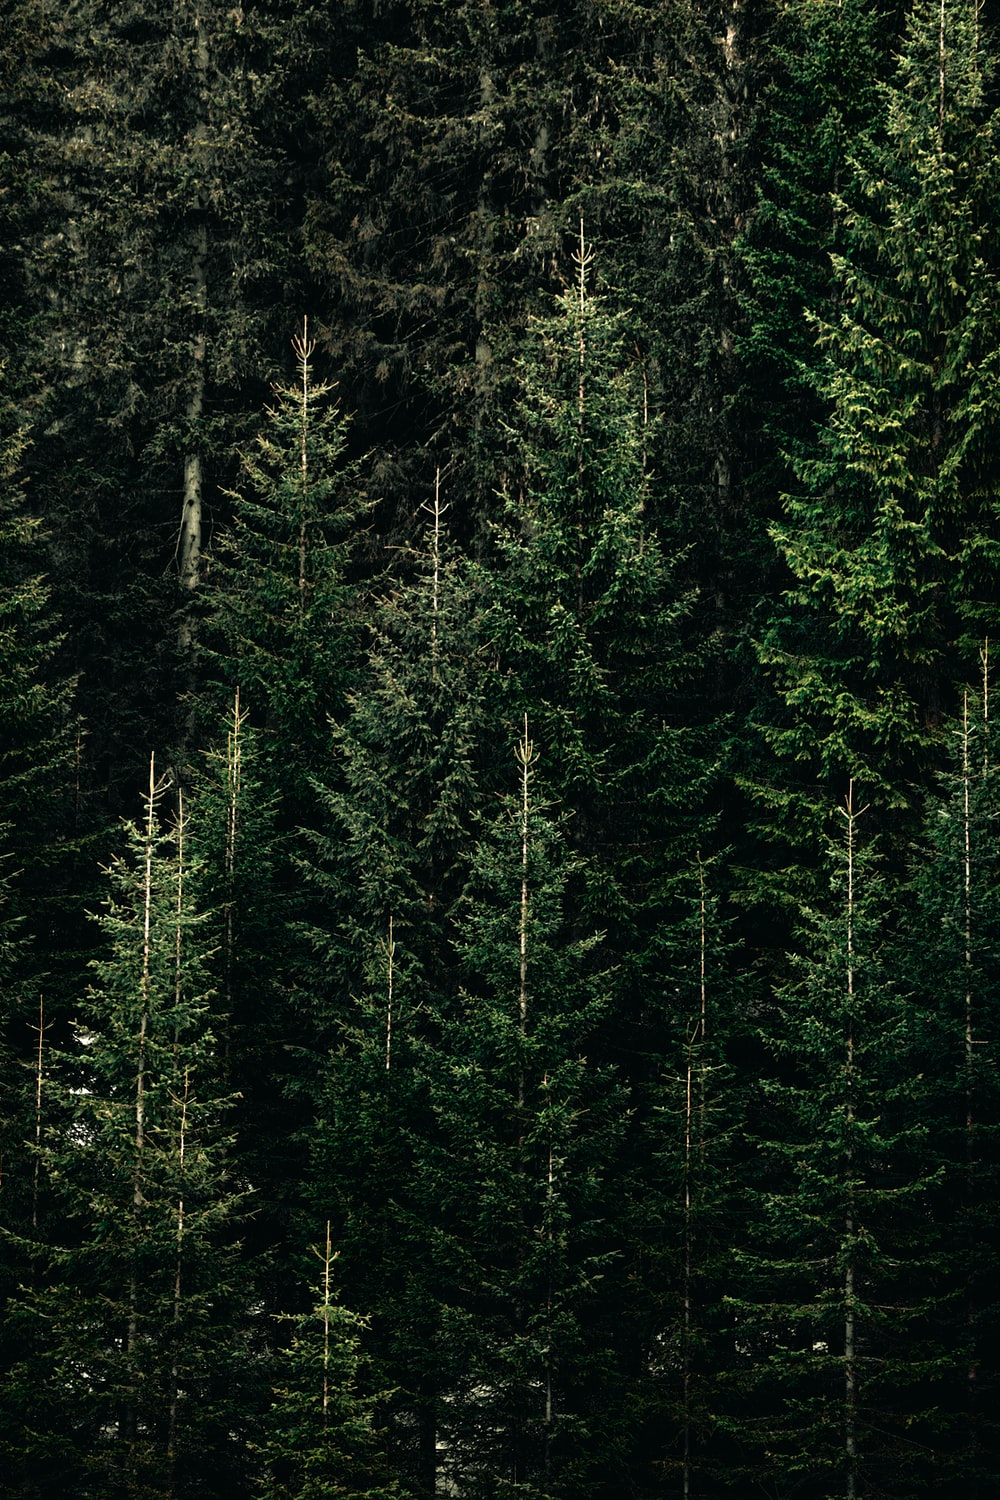 green forest with pine trees